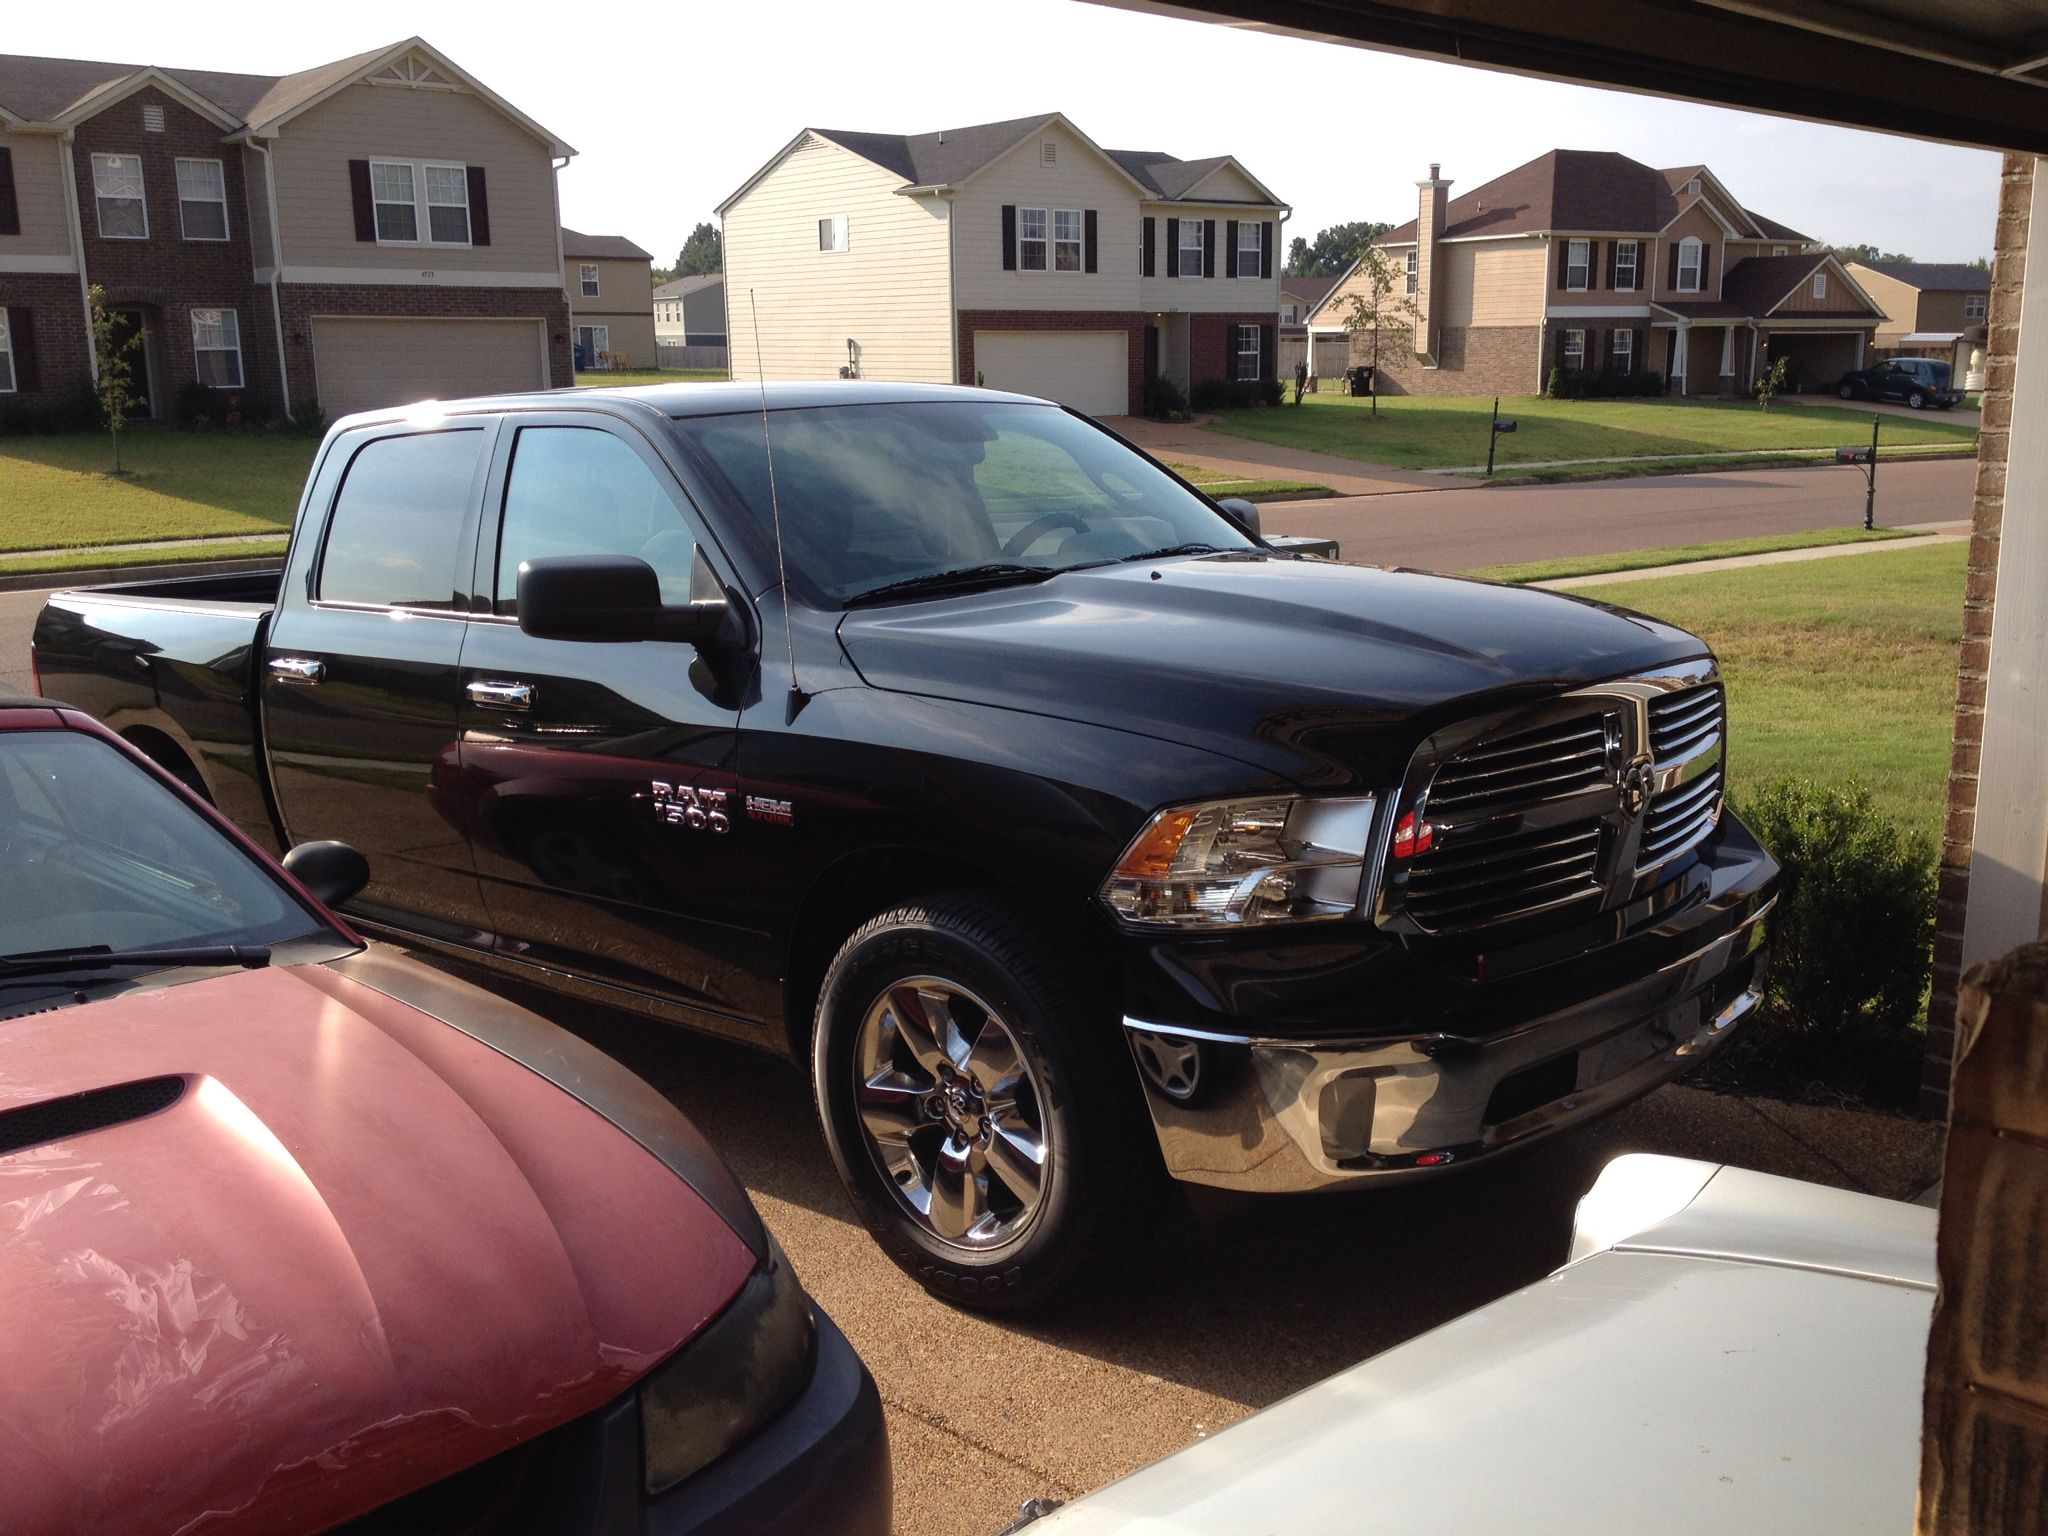 My Crew cab My 2015 Dodge Ram 1500 crew cab build